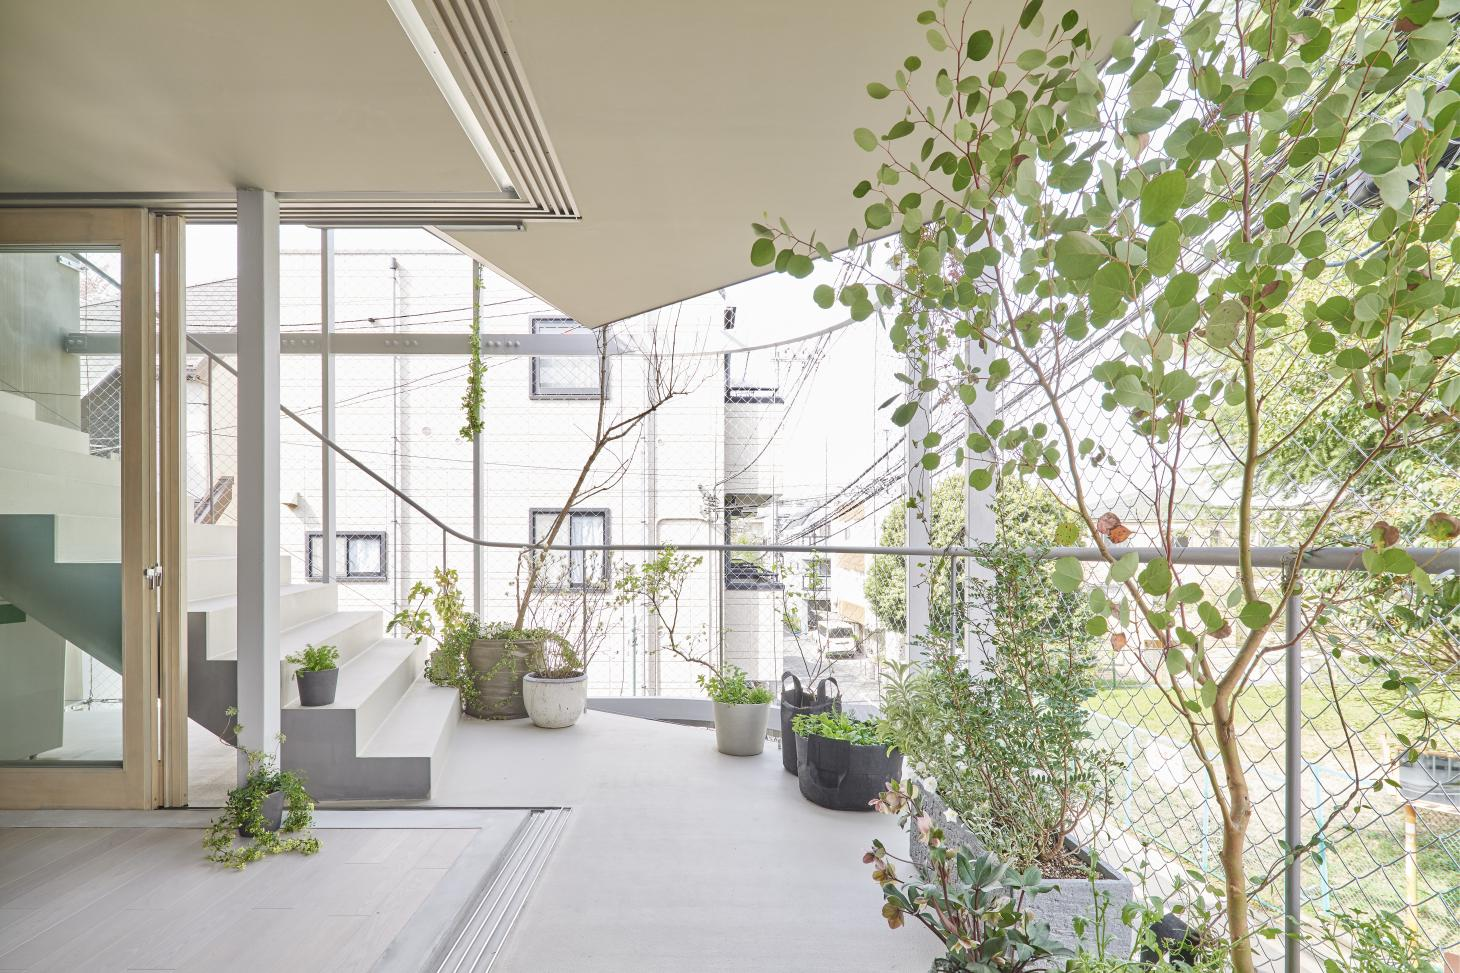 Tokyo House by n o t architects studio with its exposed structure